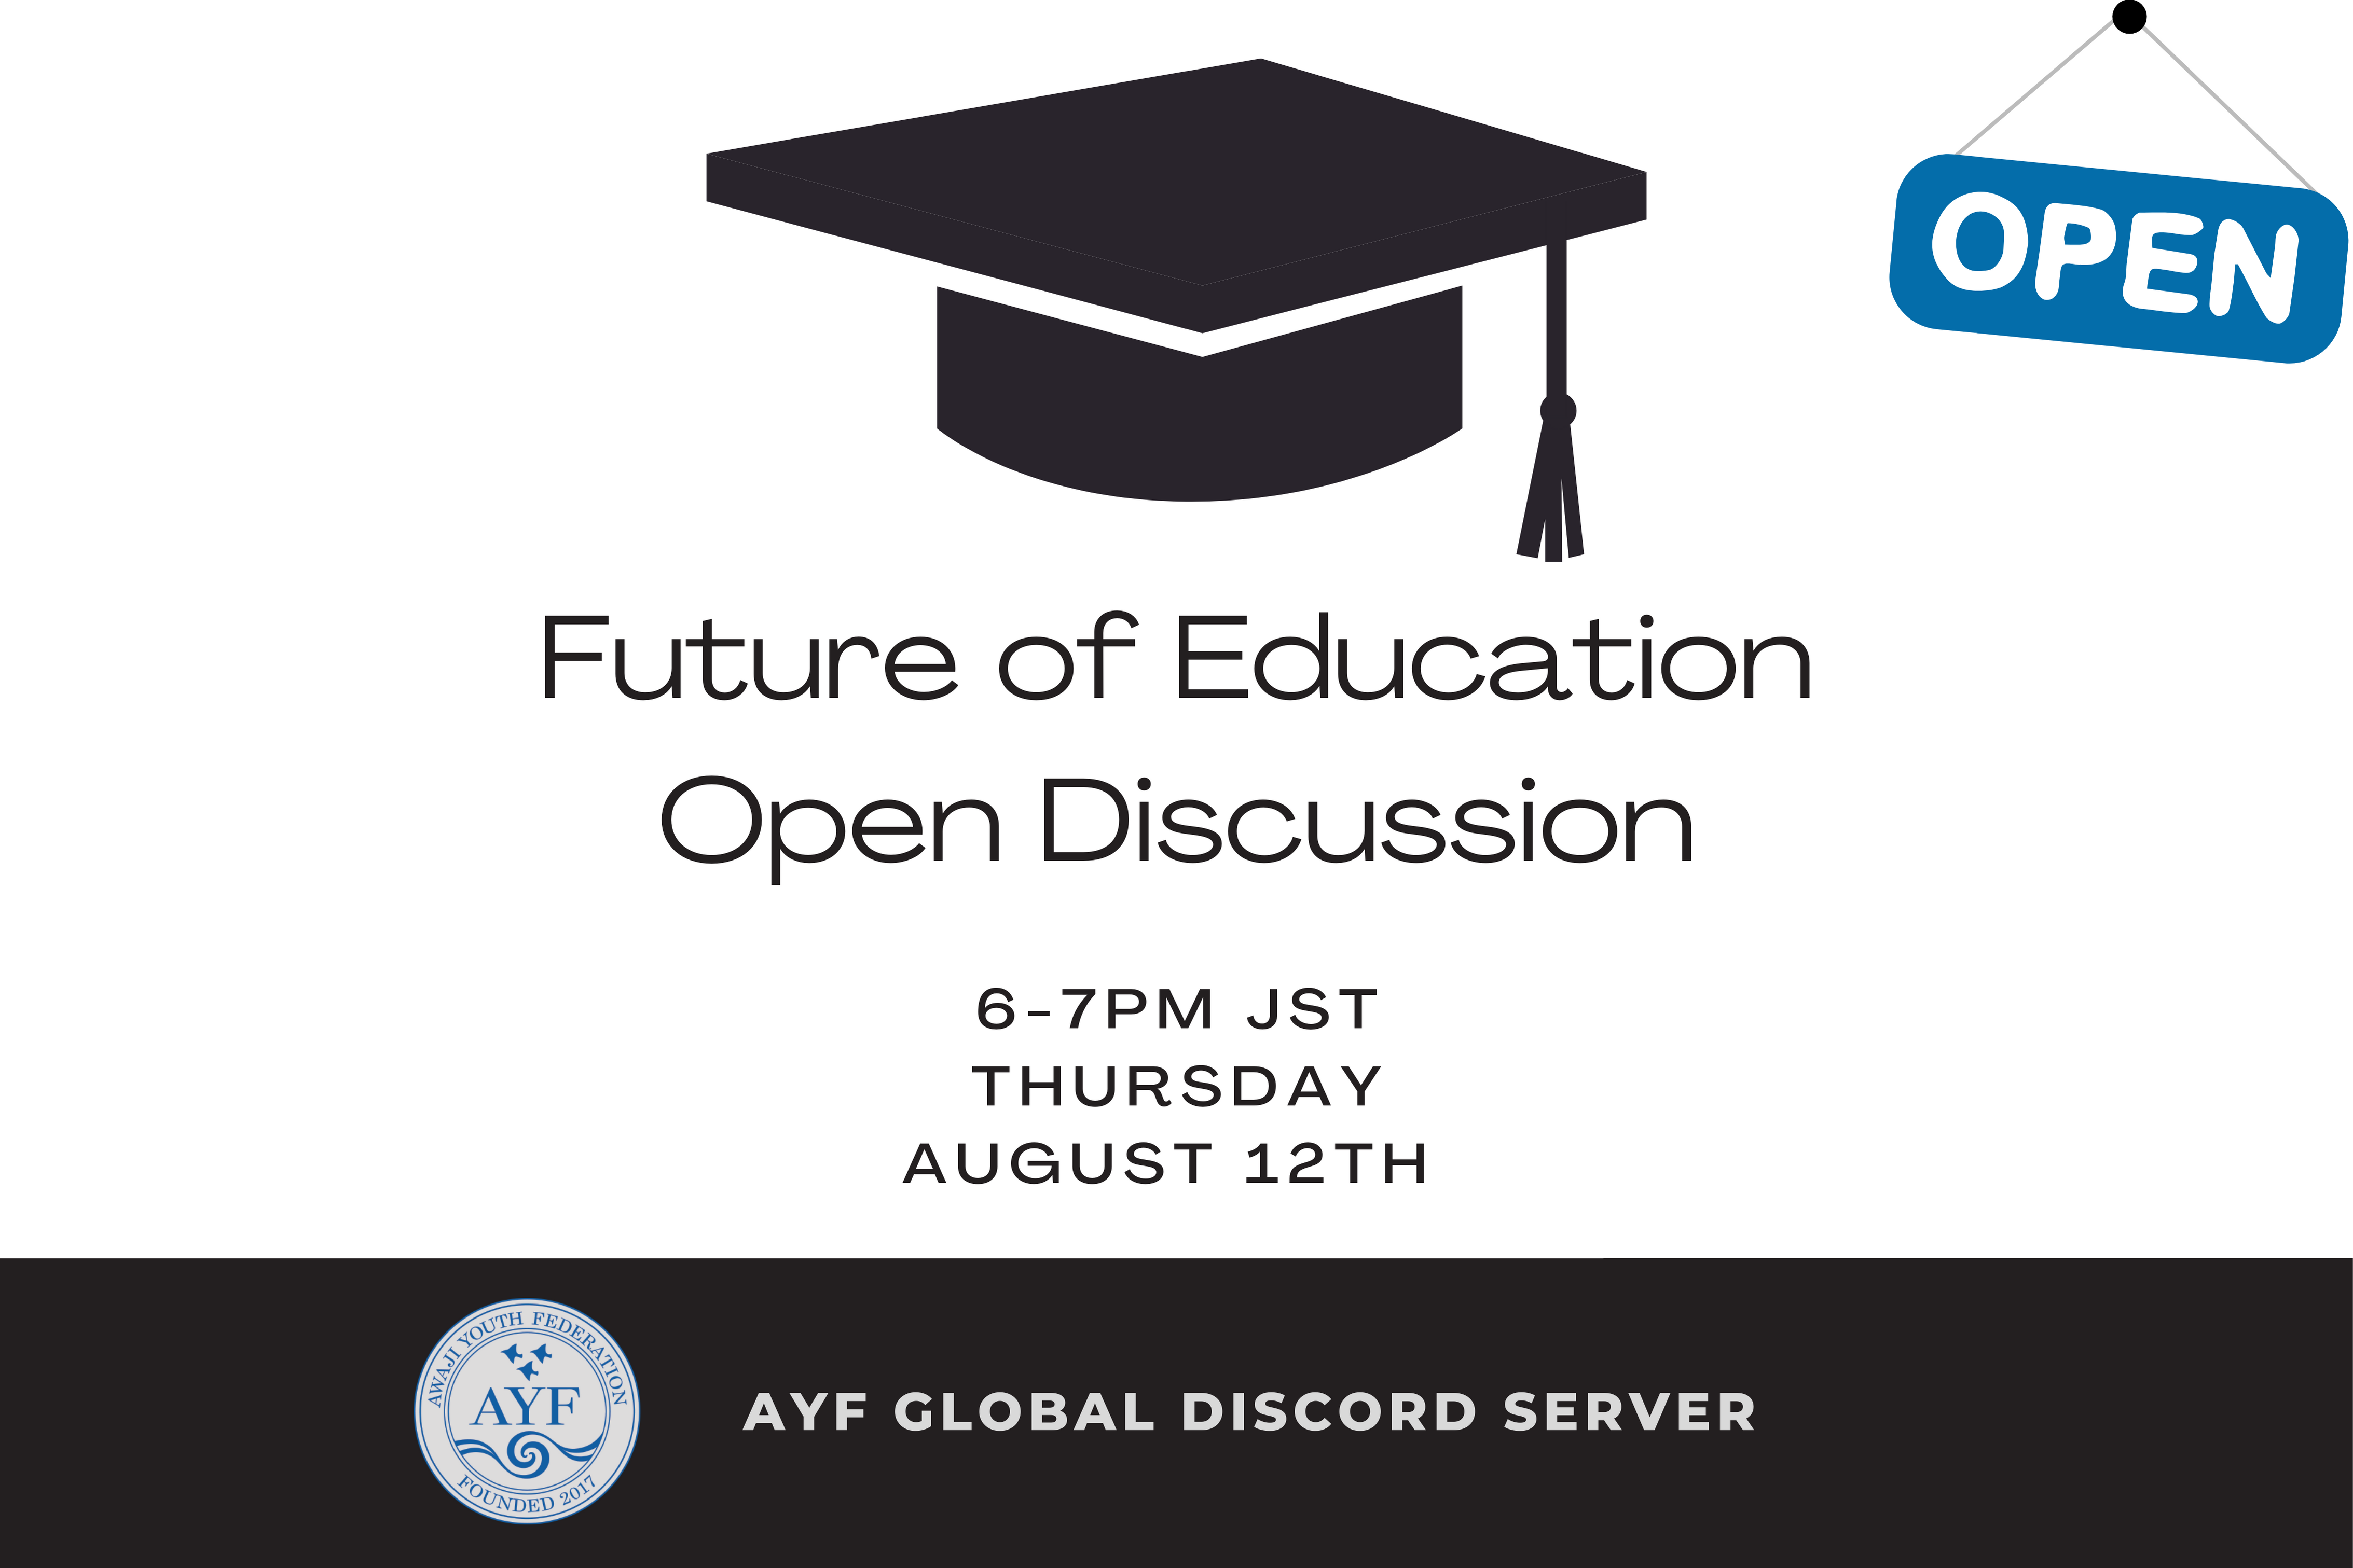 [Open Discussion] Future of Education (August 12)